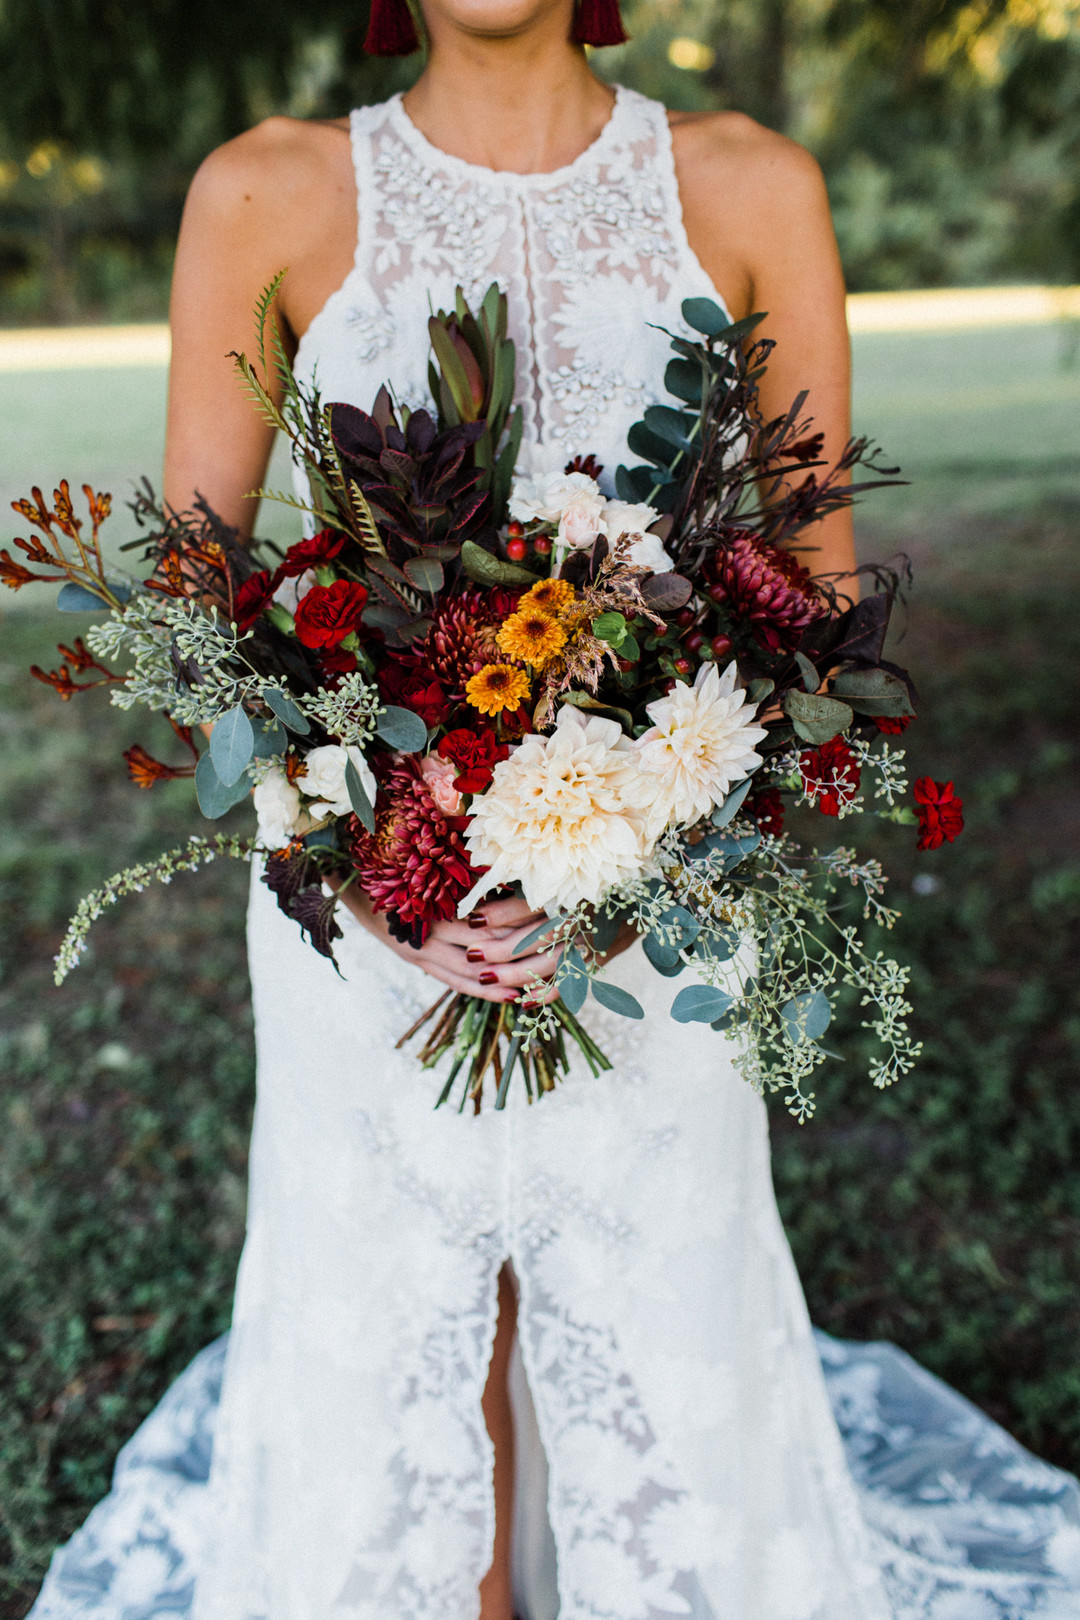 McCurdy_Bloom_LaurenBloomPhotography_MoodyDallasBridalsLaurenBloomPhotography1of37_big.jpg